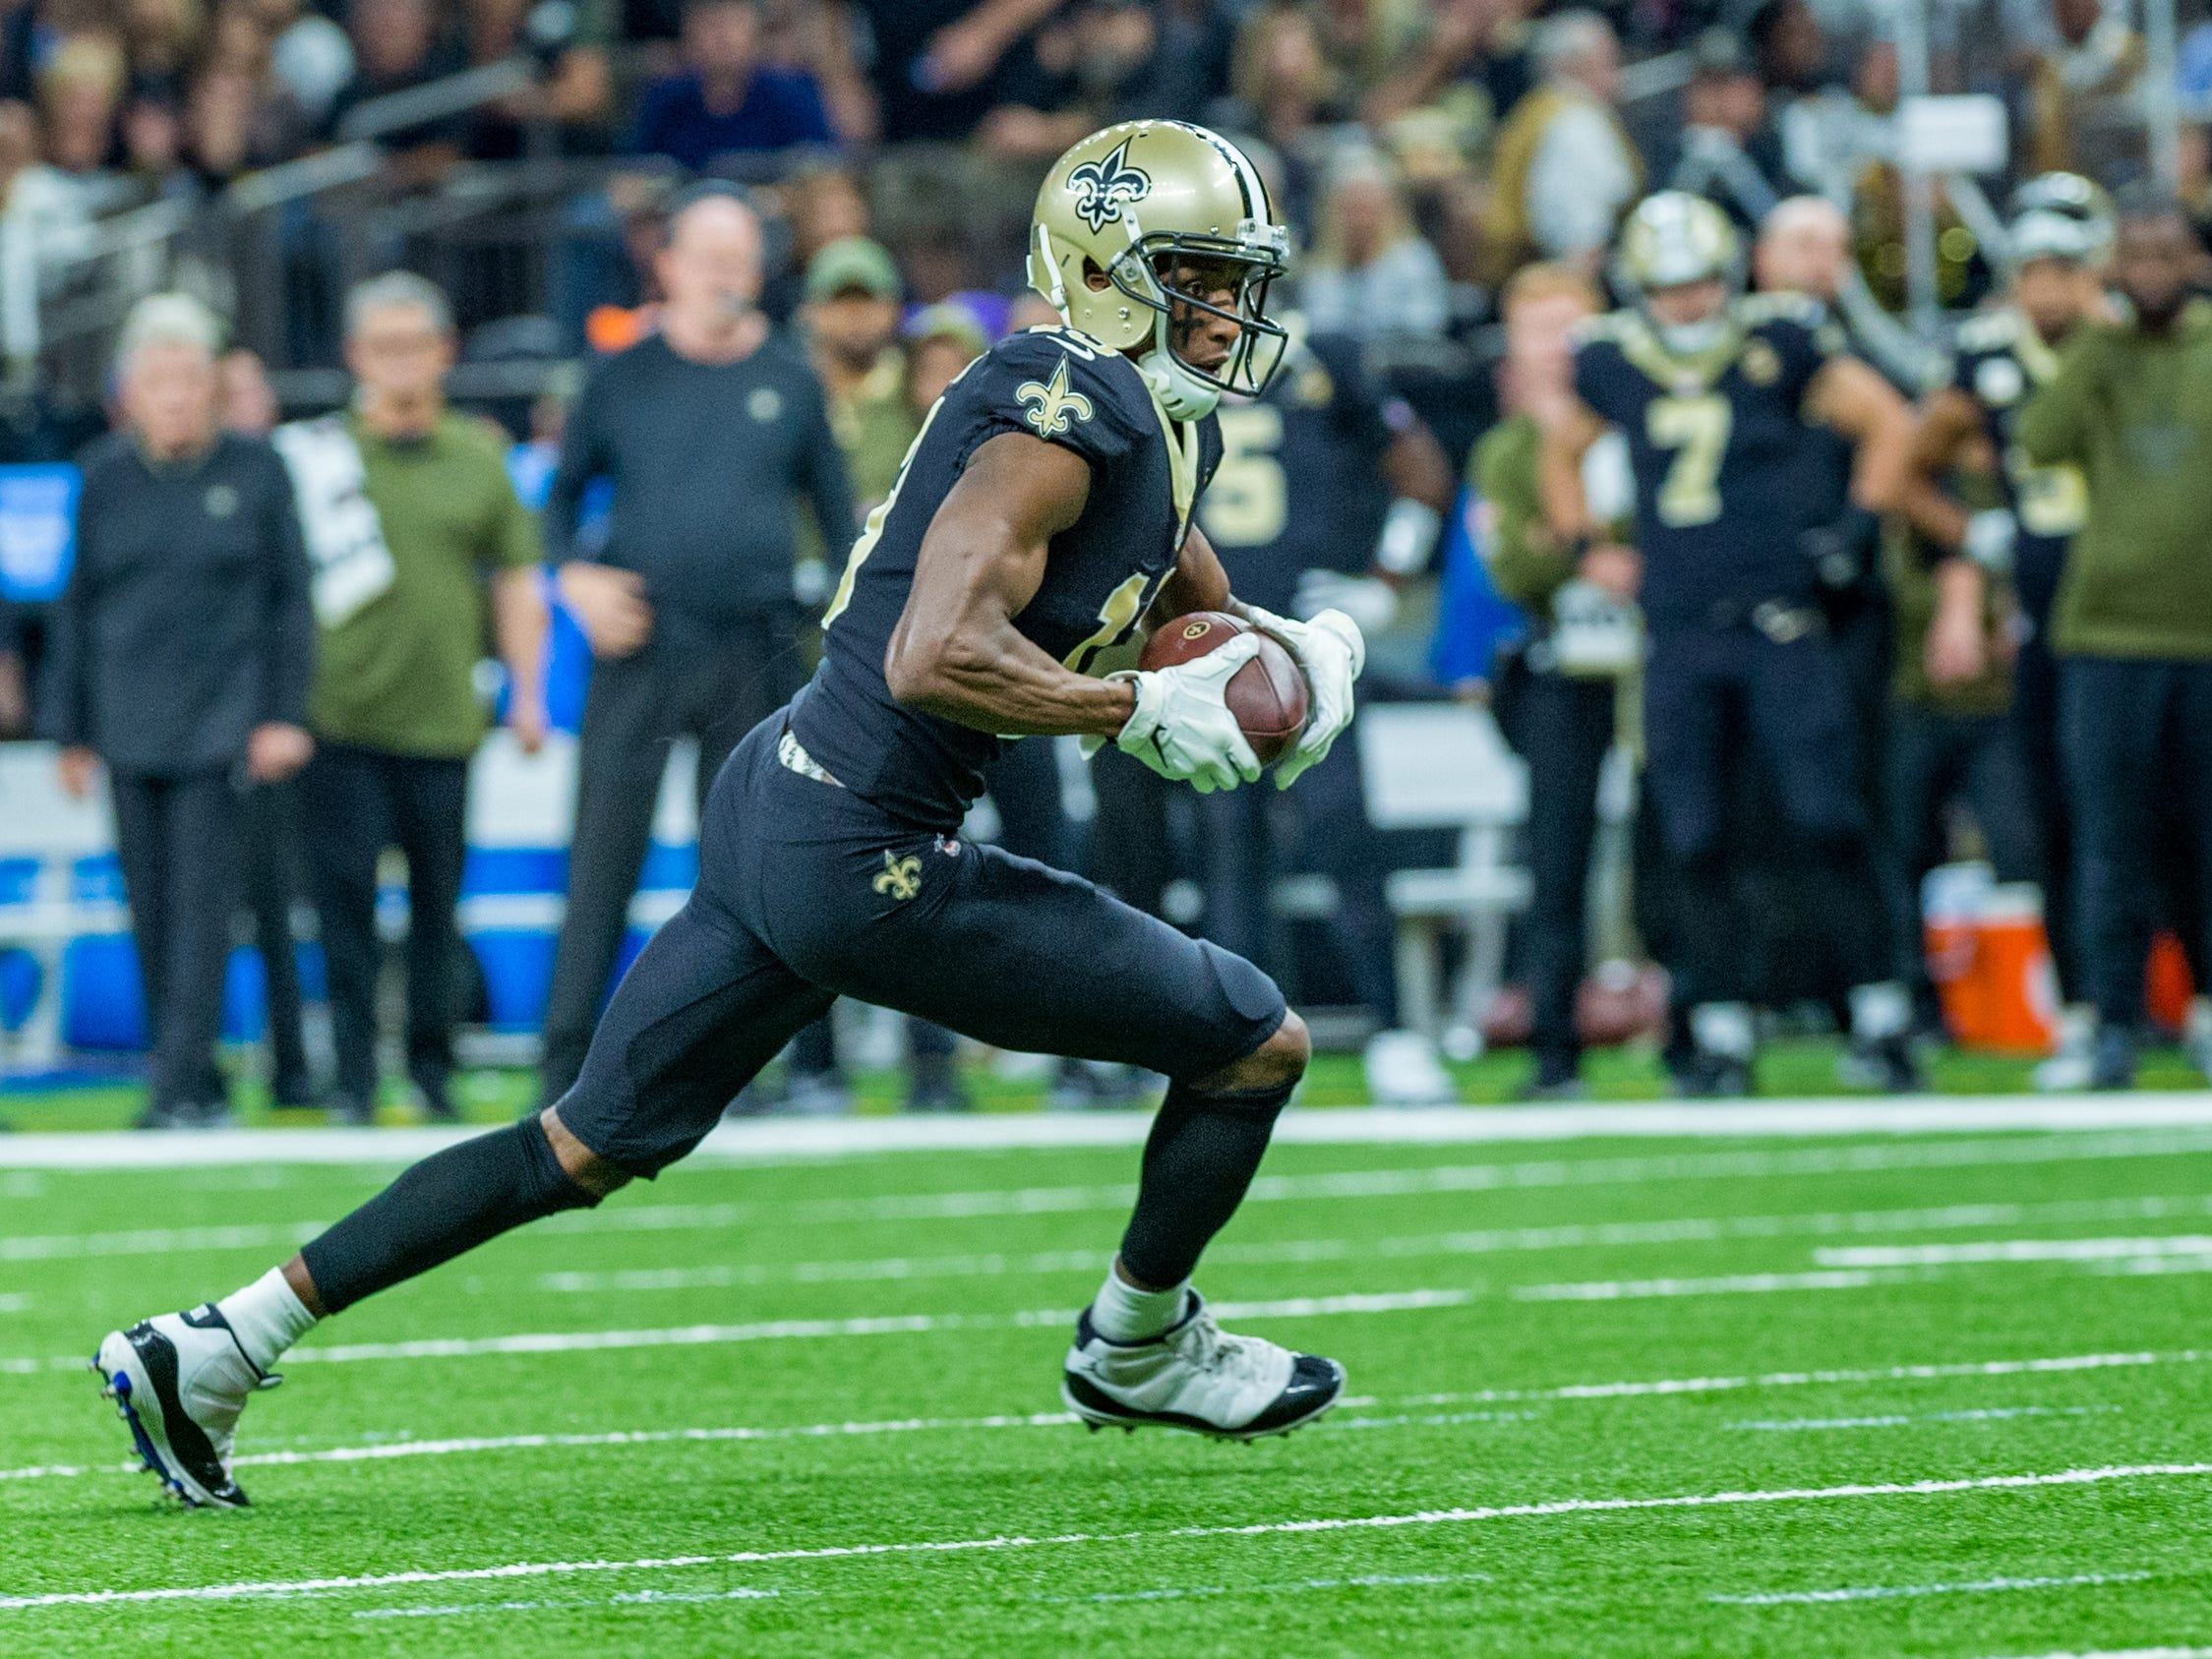 Saints wide receiver Michael Thomas catches a pass during the NFL football game between the New Orleans Saints and the Los Angeles Rams on Sunday, Nov. 4, 2018.